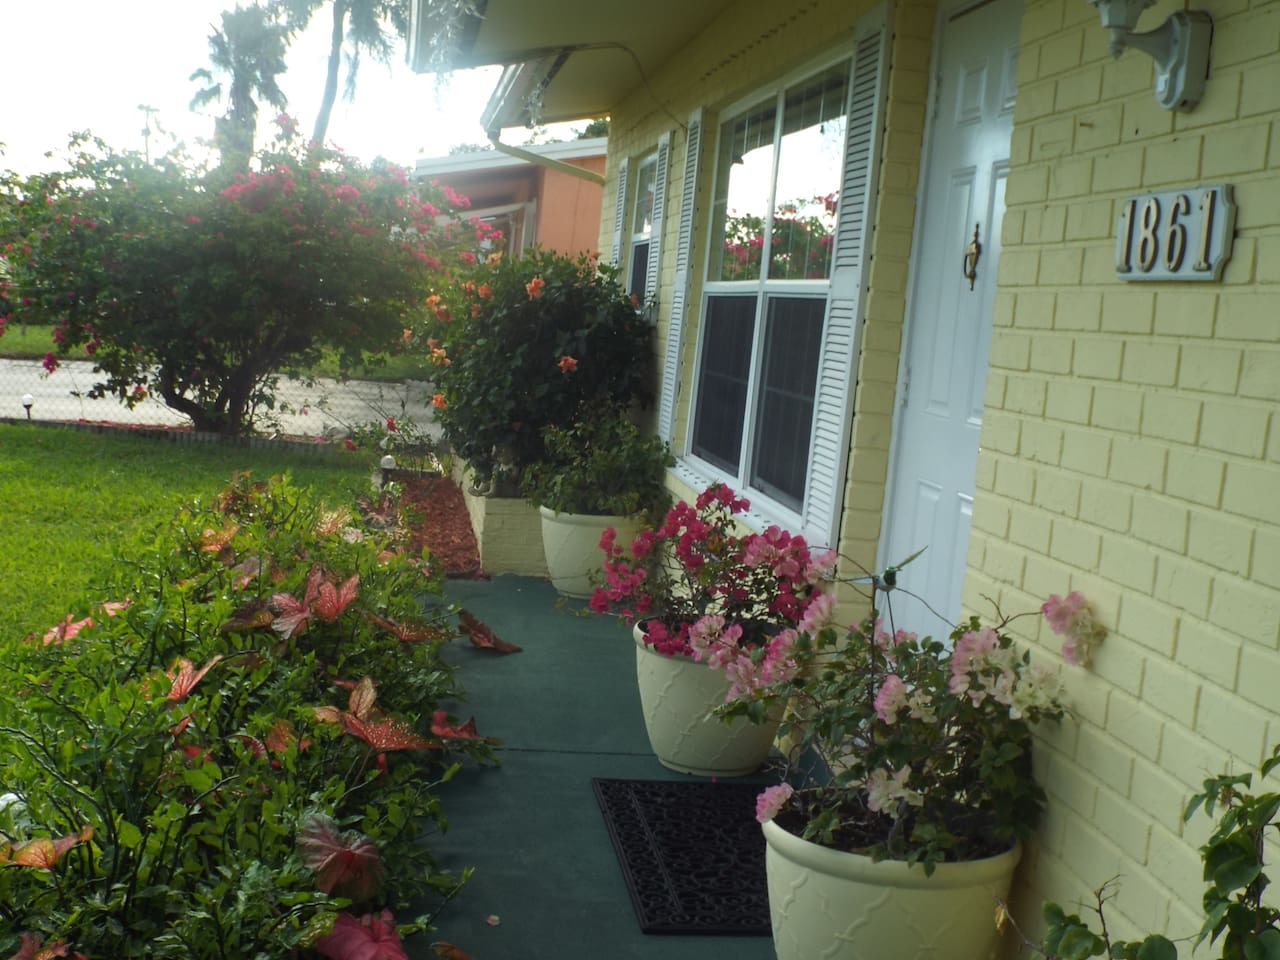 Bougainvillea House loc 4 miles from Pompano Beach - Bungalows for ...